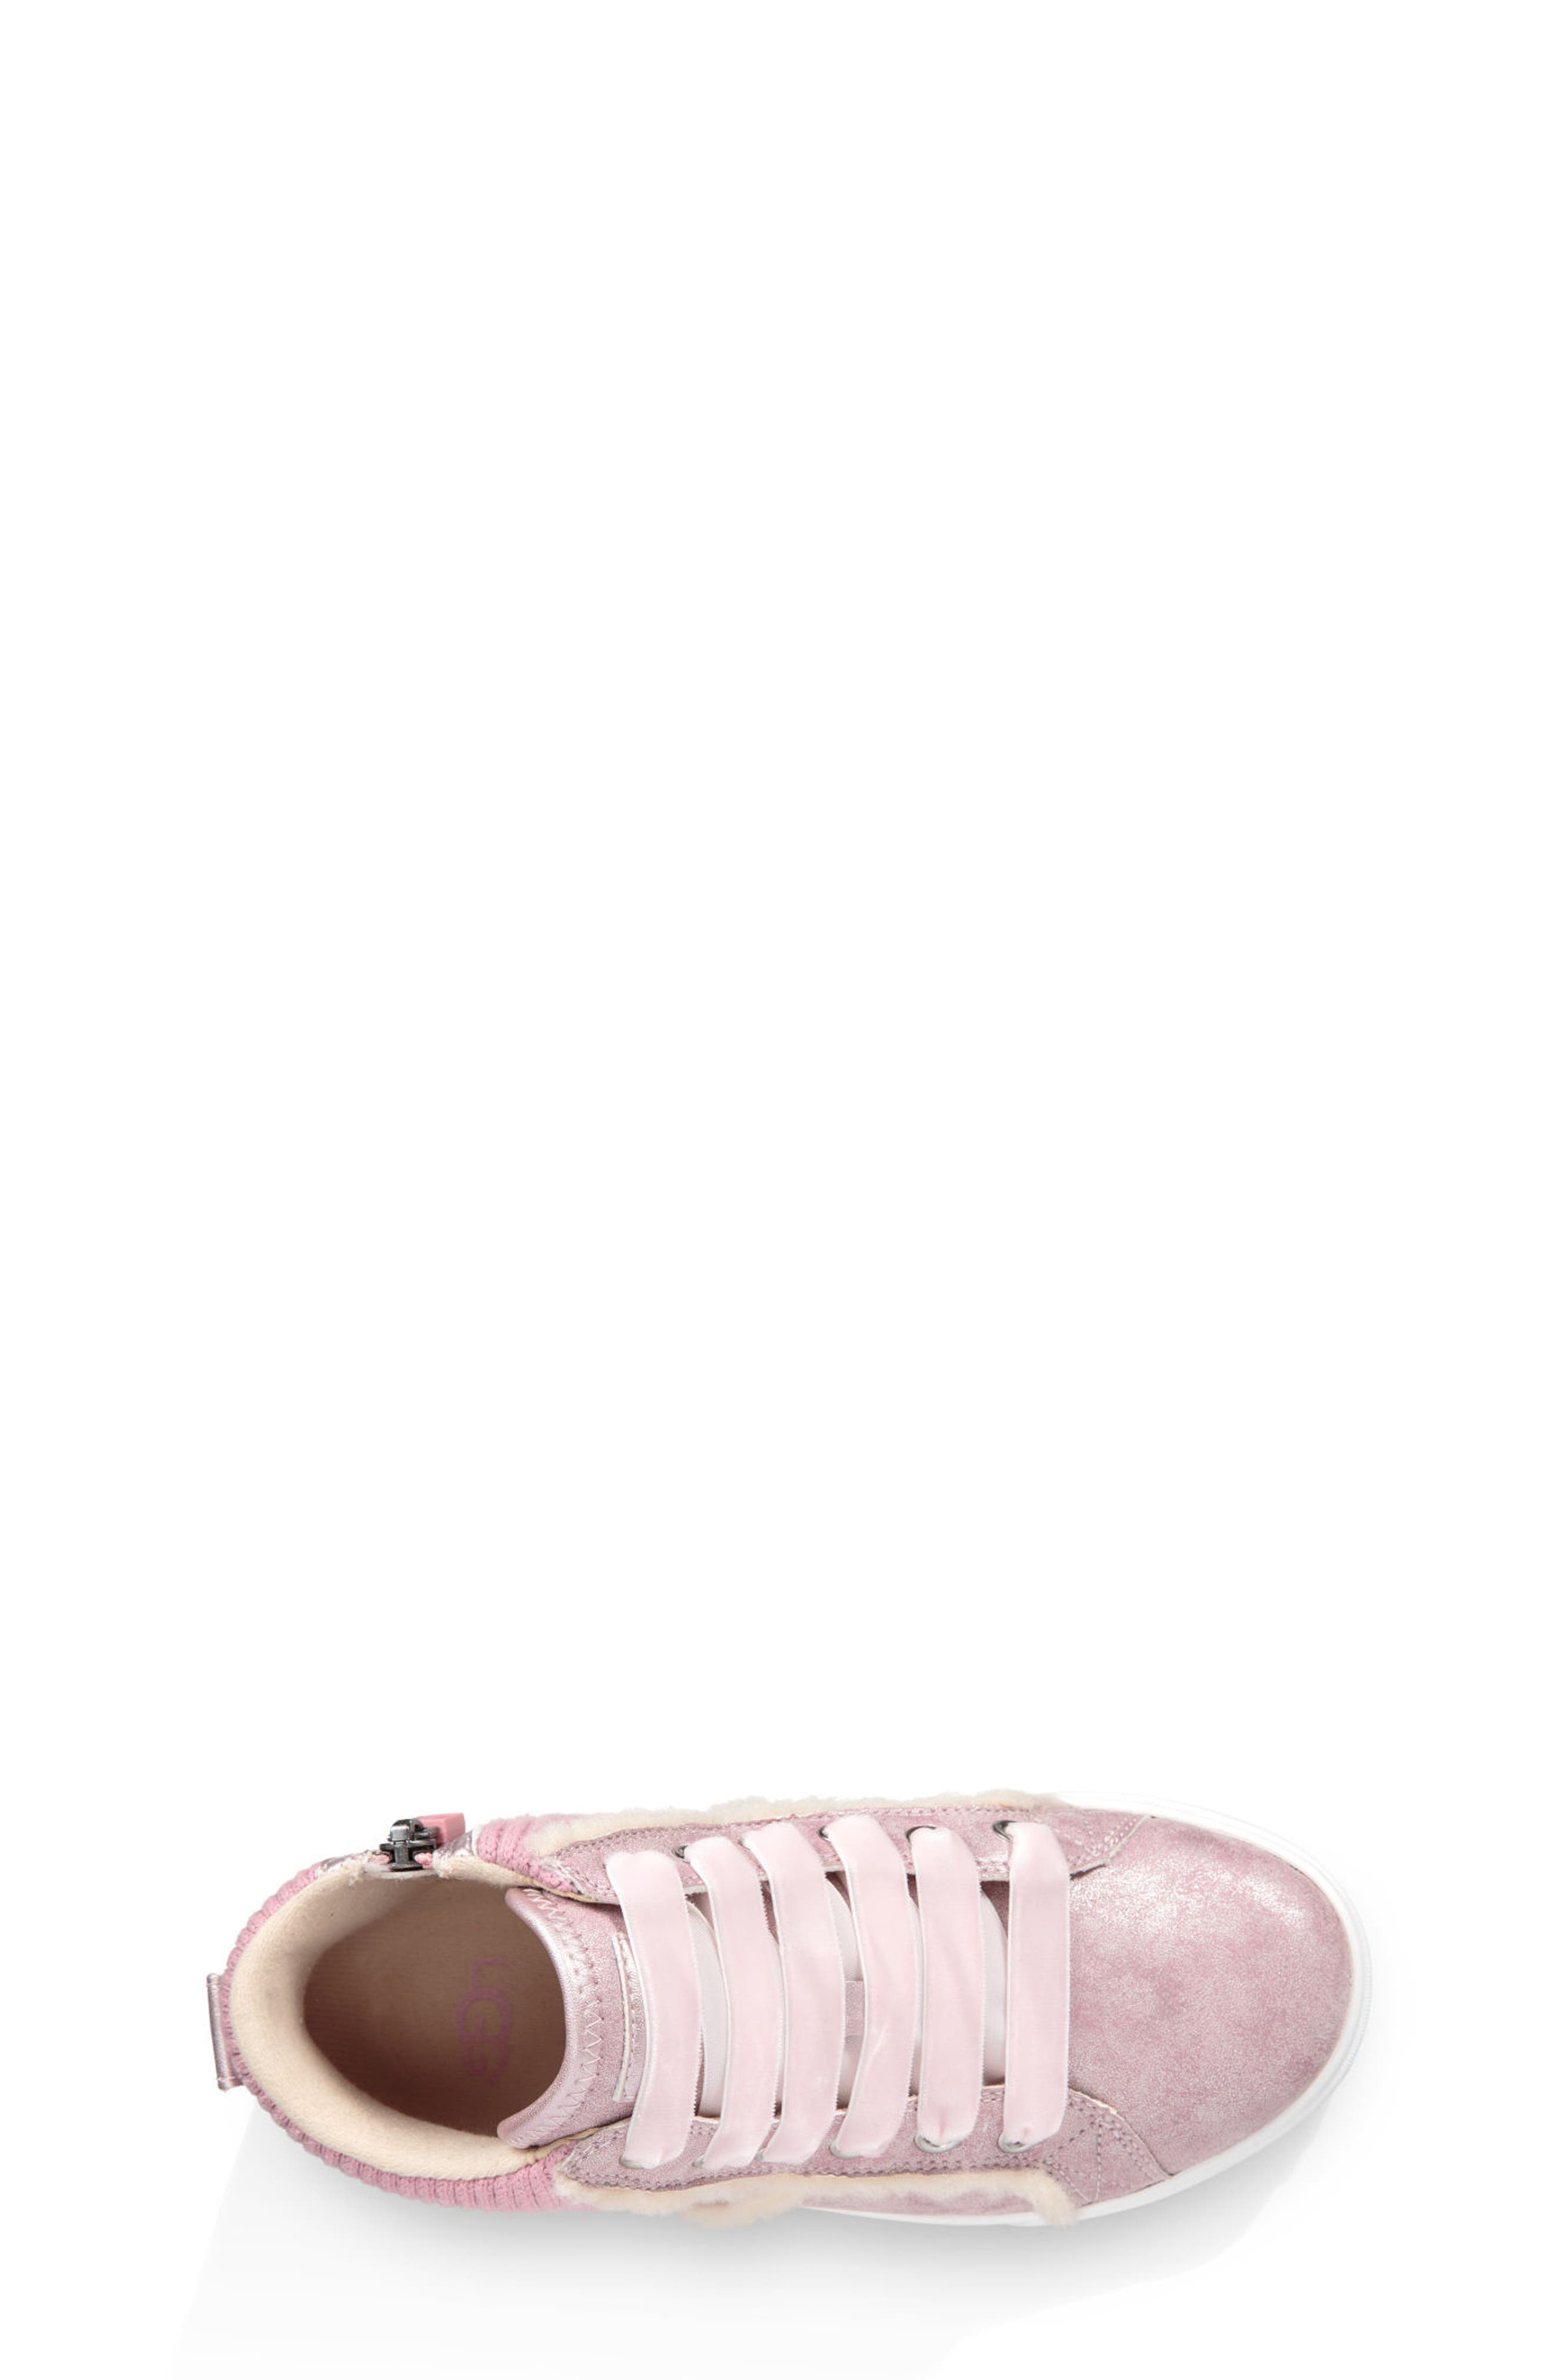 Addie Genuine Shearling High Top Sneaker,                             Alternate thumbnail 3, color,                             Cameo Pink